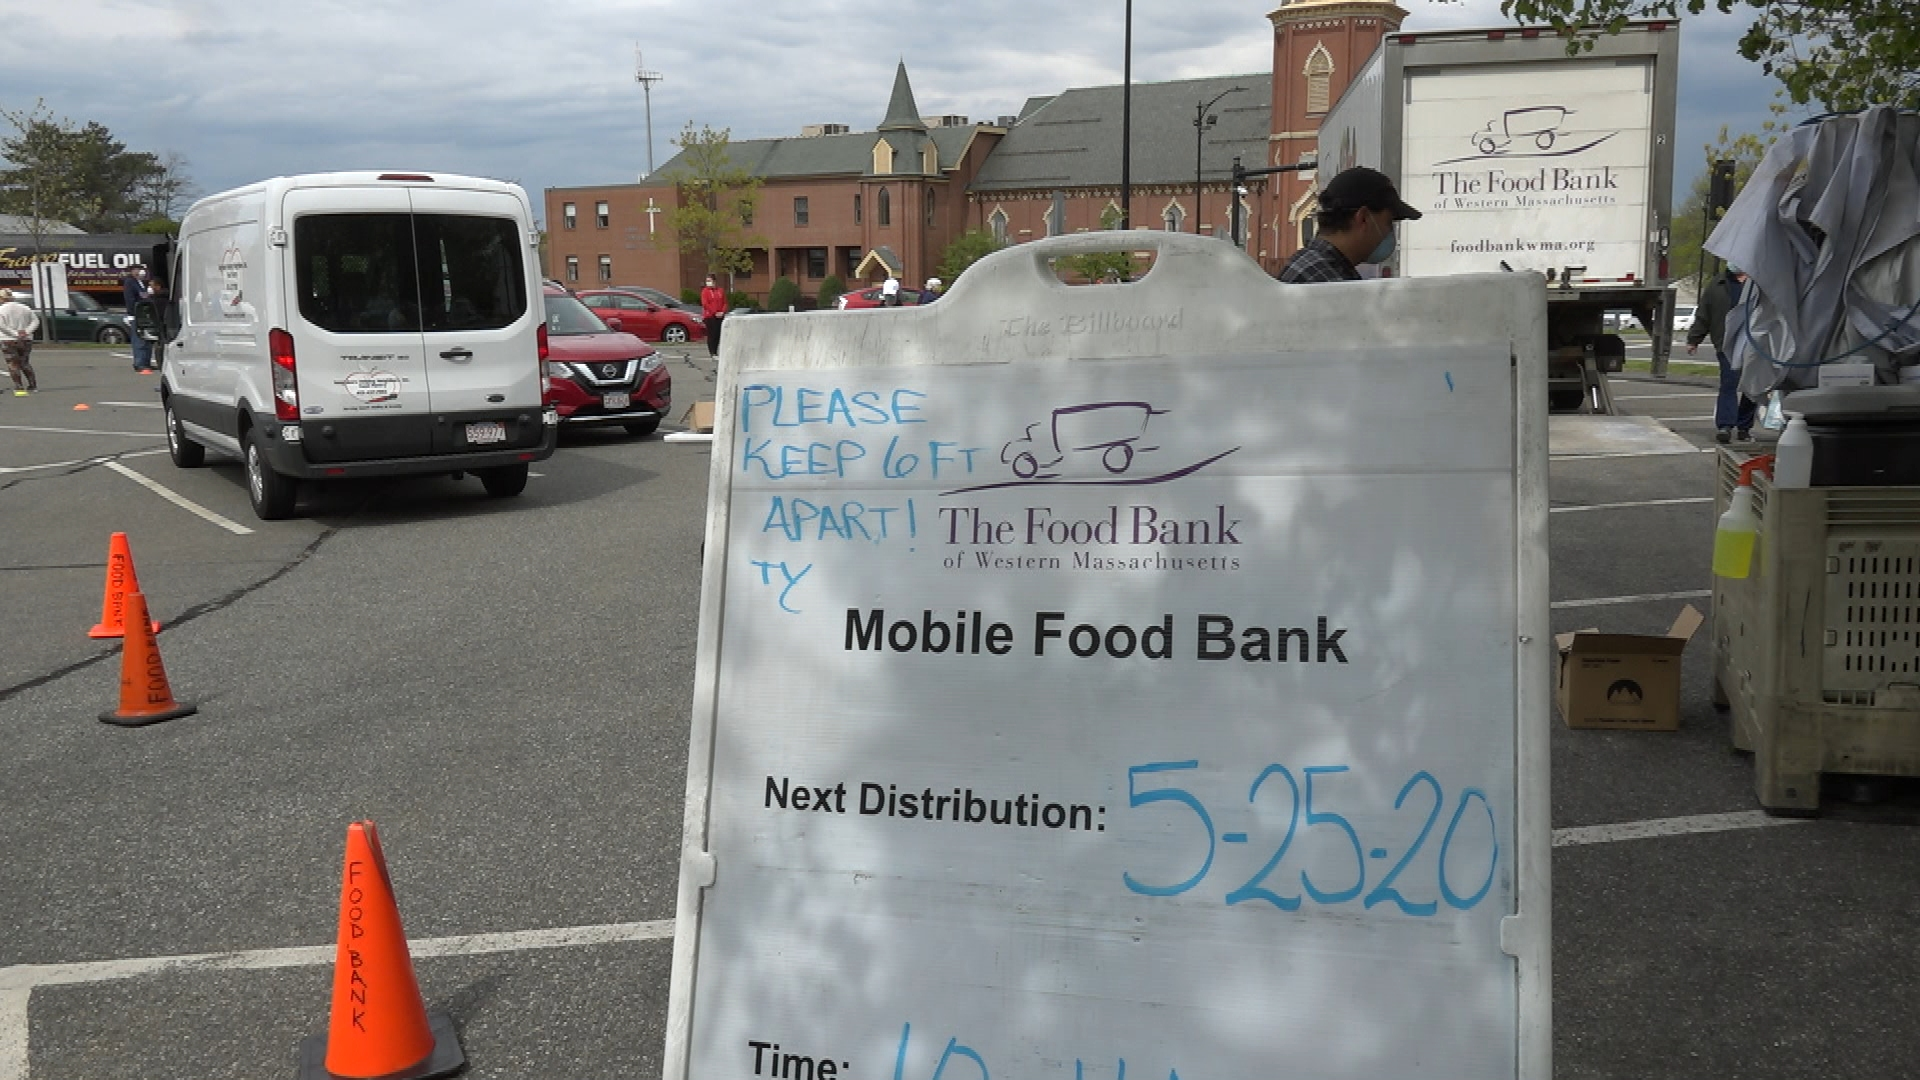 WATCH: Follow a Food Banks of Western MA mobile food bank to see how they're handing the increasing demand for food assistance during the pandemic.